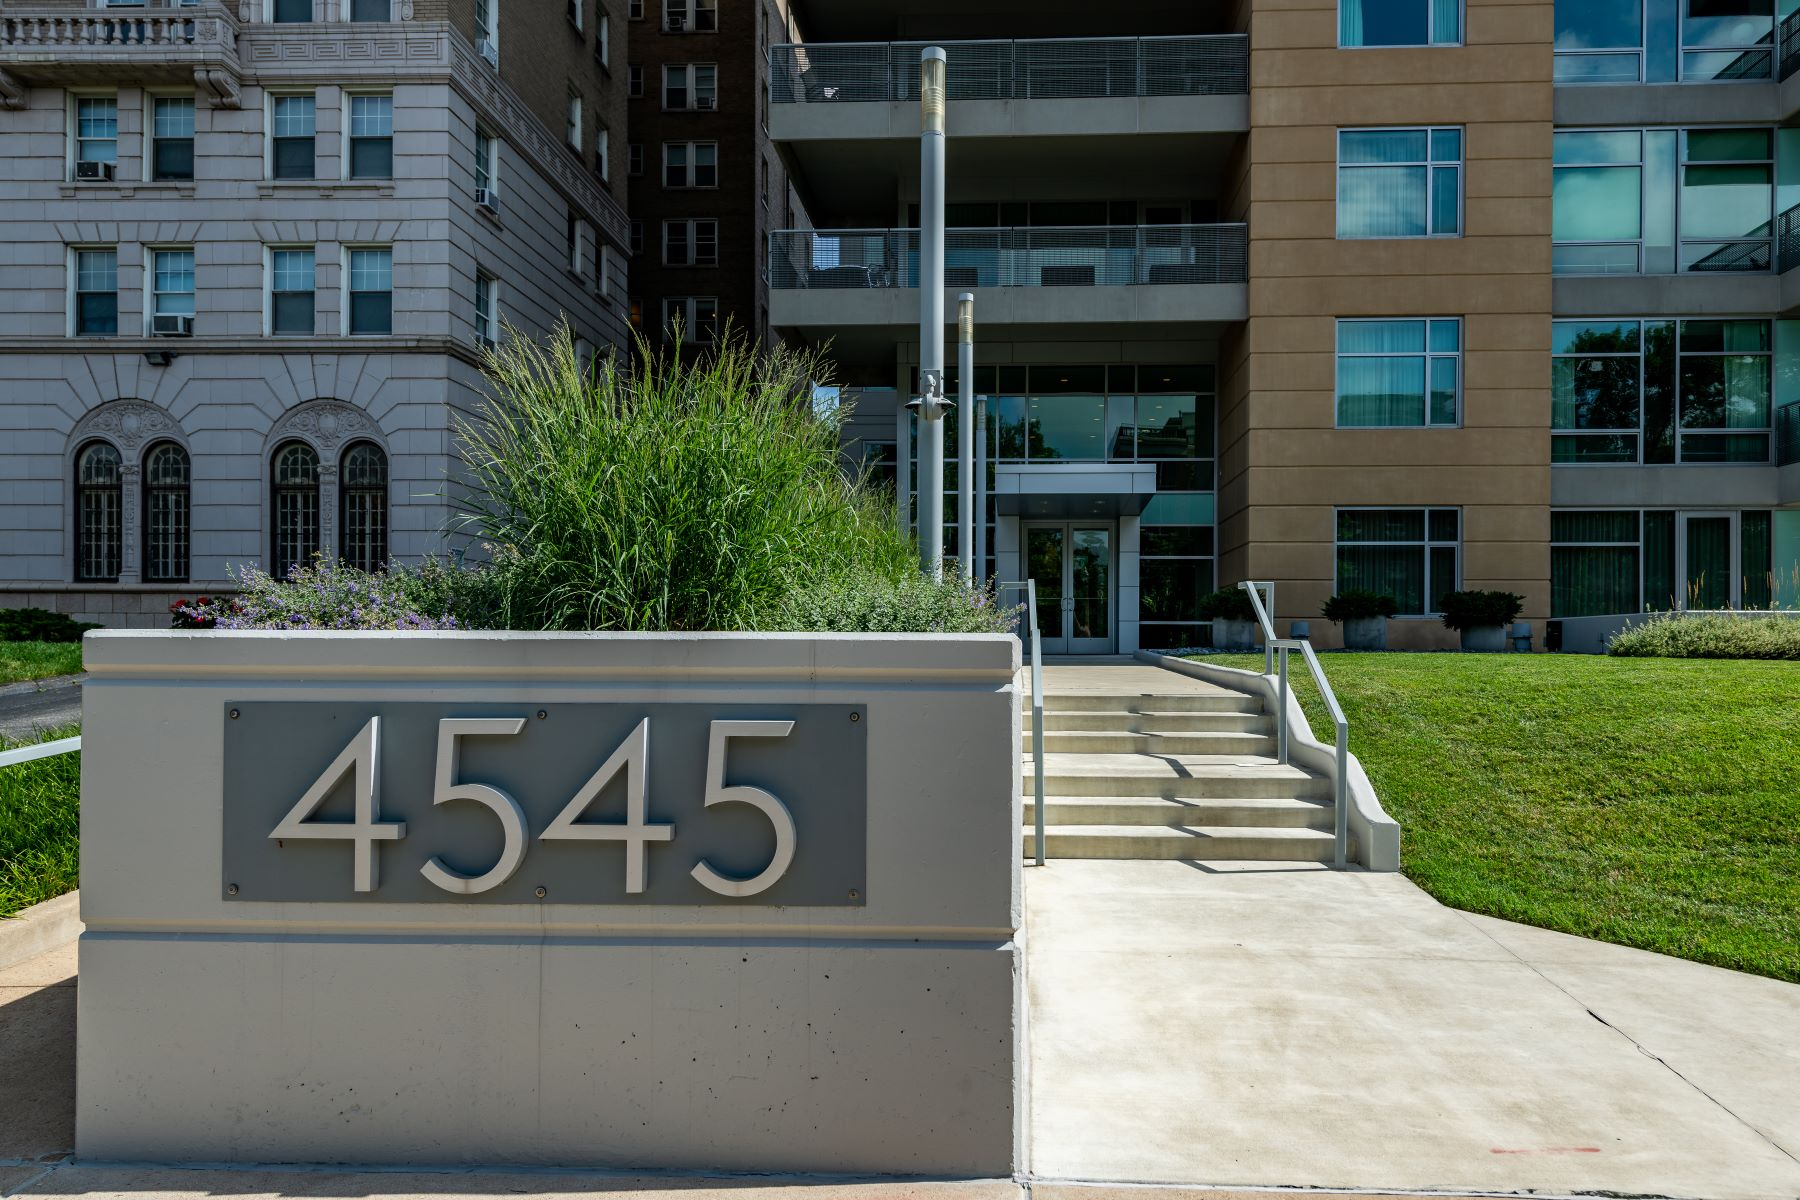 Condominiums for Sale at A Central West End Oasis 4545 Lindell Boulevard, #14 St. Louis, Missouri 63108 United States